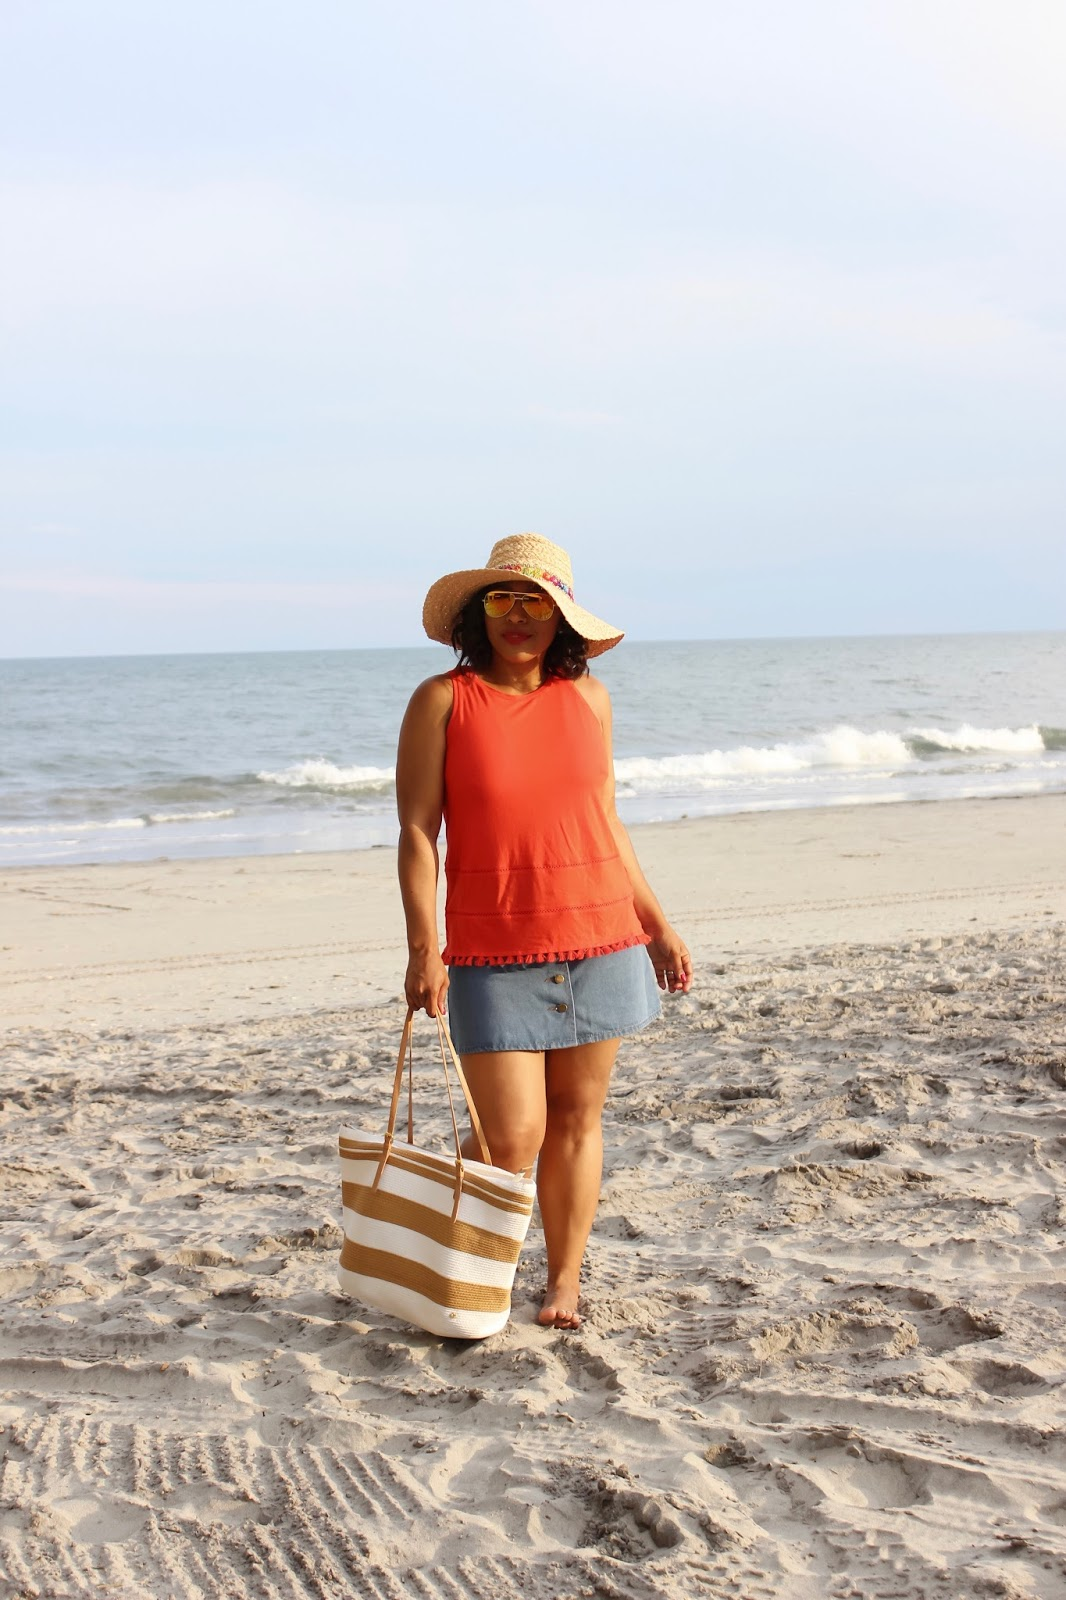 Beach Days Are The Best Days, beach attire, beach trends, atlantic city beach, beach hat, pom pom hat, beach cover up, sand, beach waves, atlantic city board walk